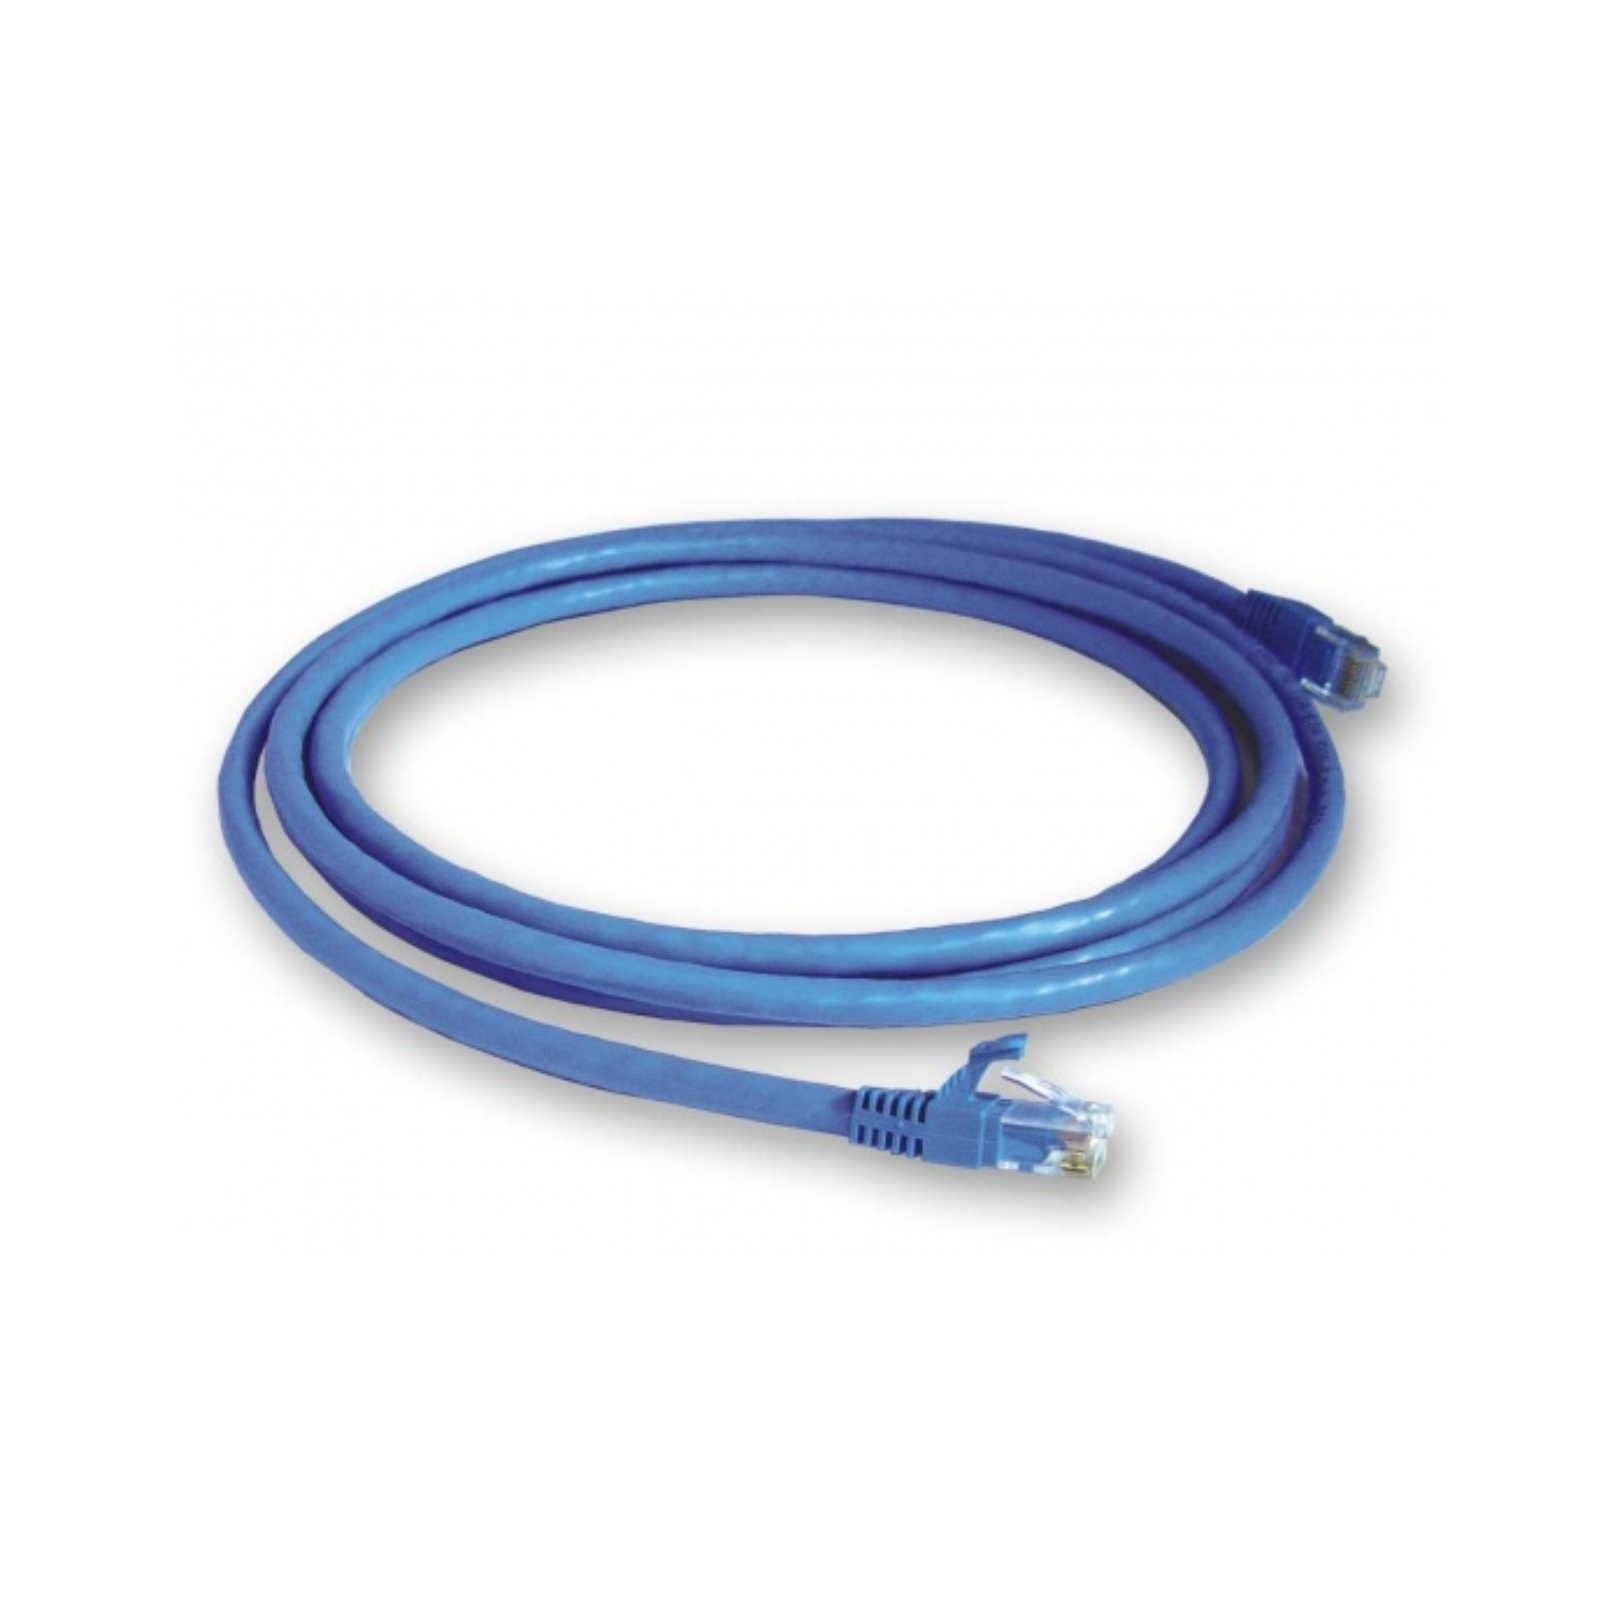 PATCH CORD CAT 5E 1,5MT C/ CAPA AZUL